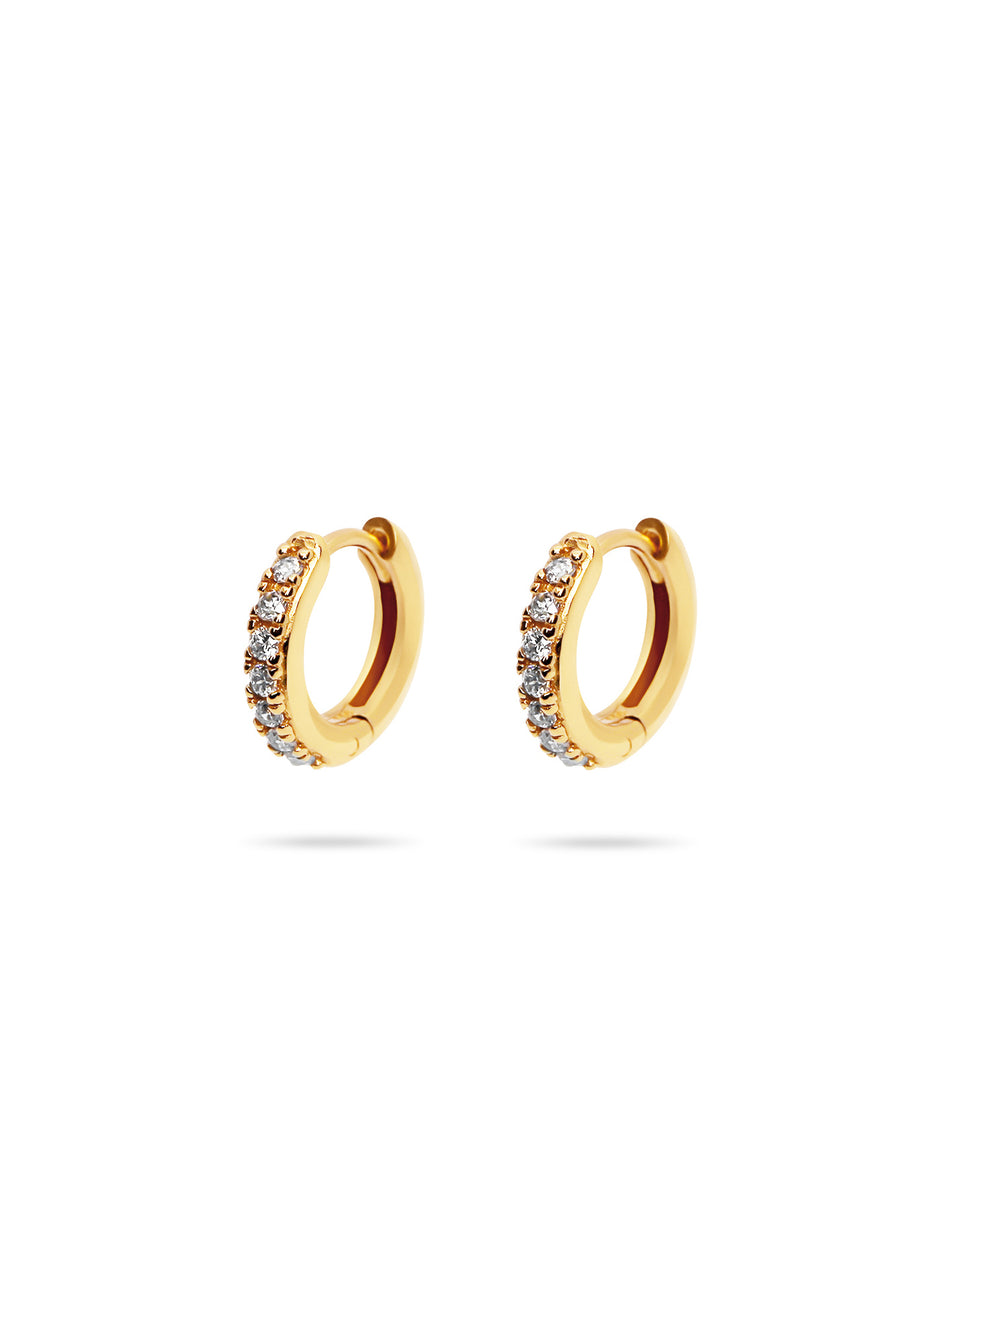 THE MINI PAVE HUGGIE EARRINGS